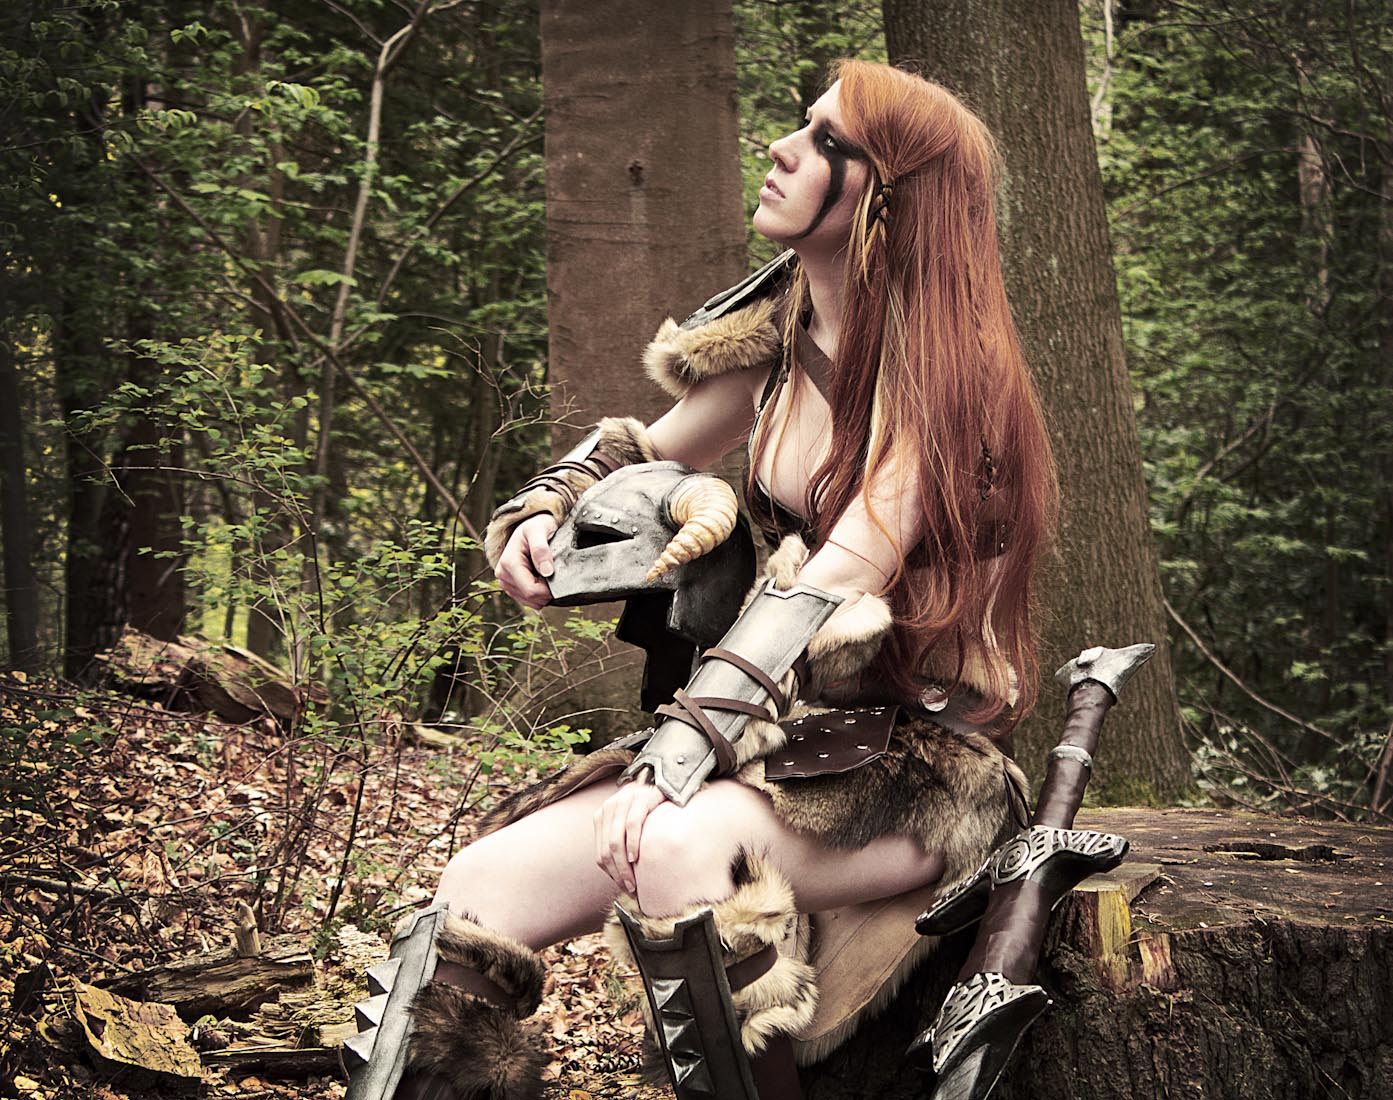 Elder scrolls cosplay sex sexy pictures